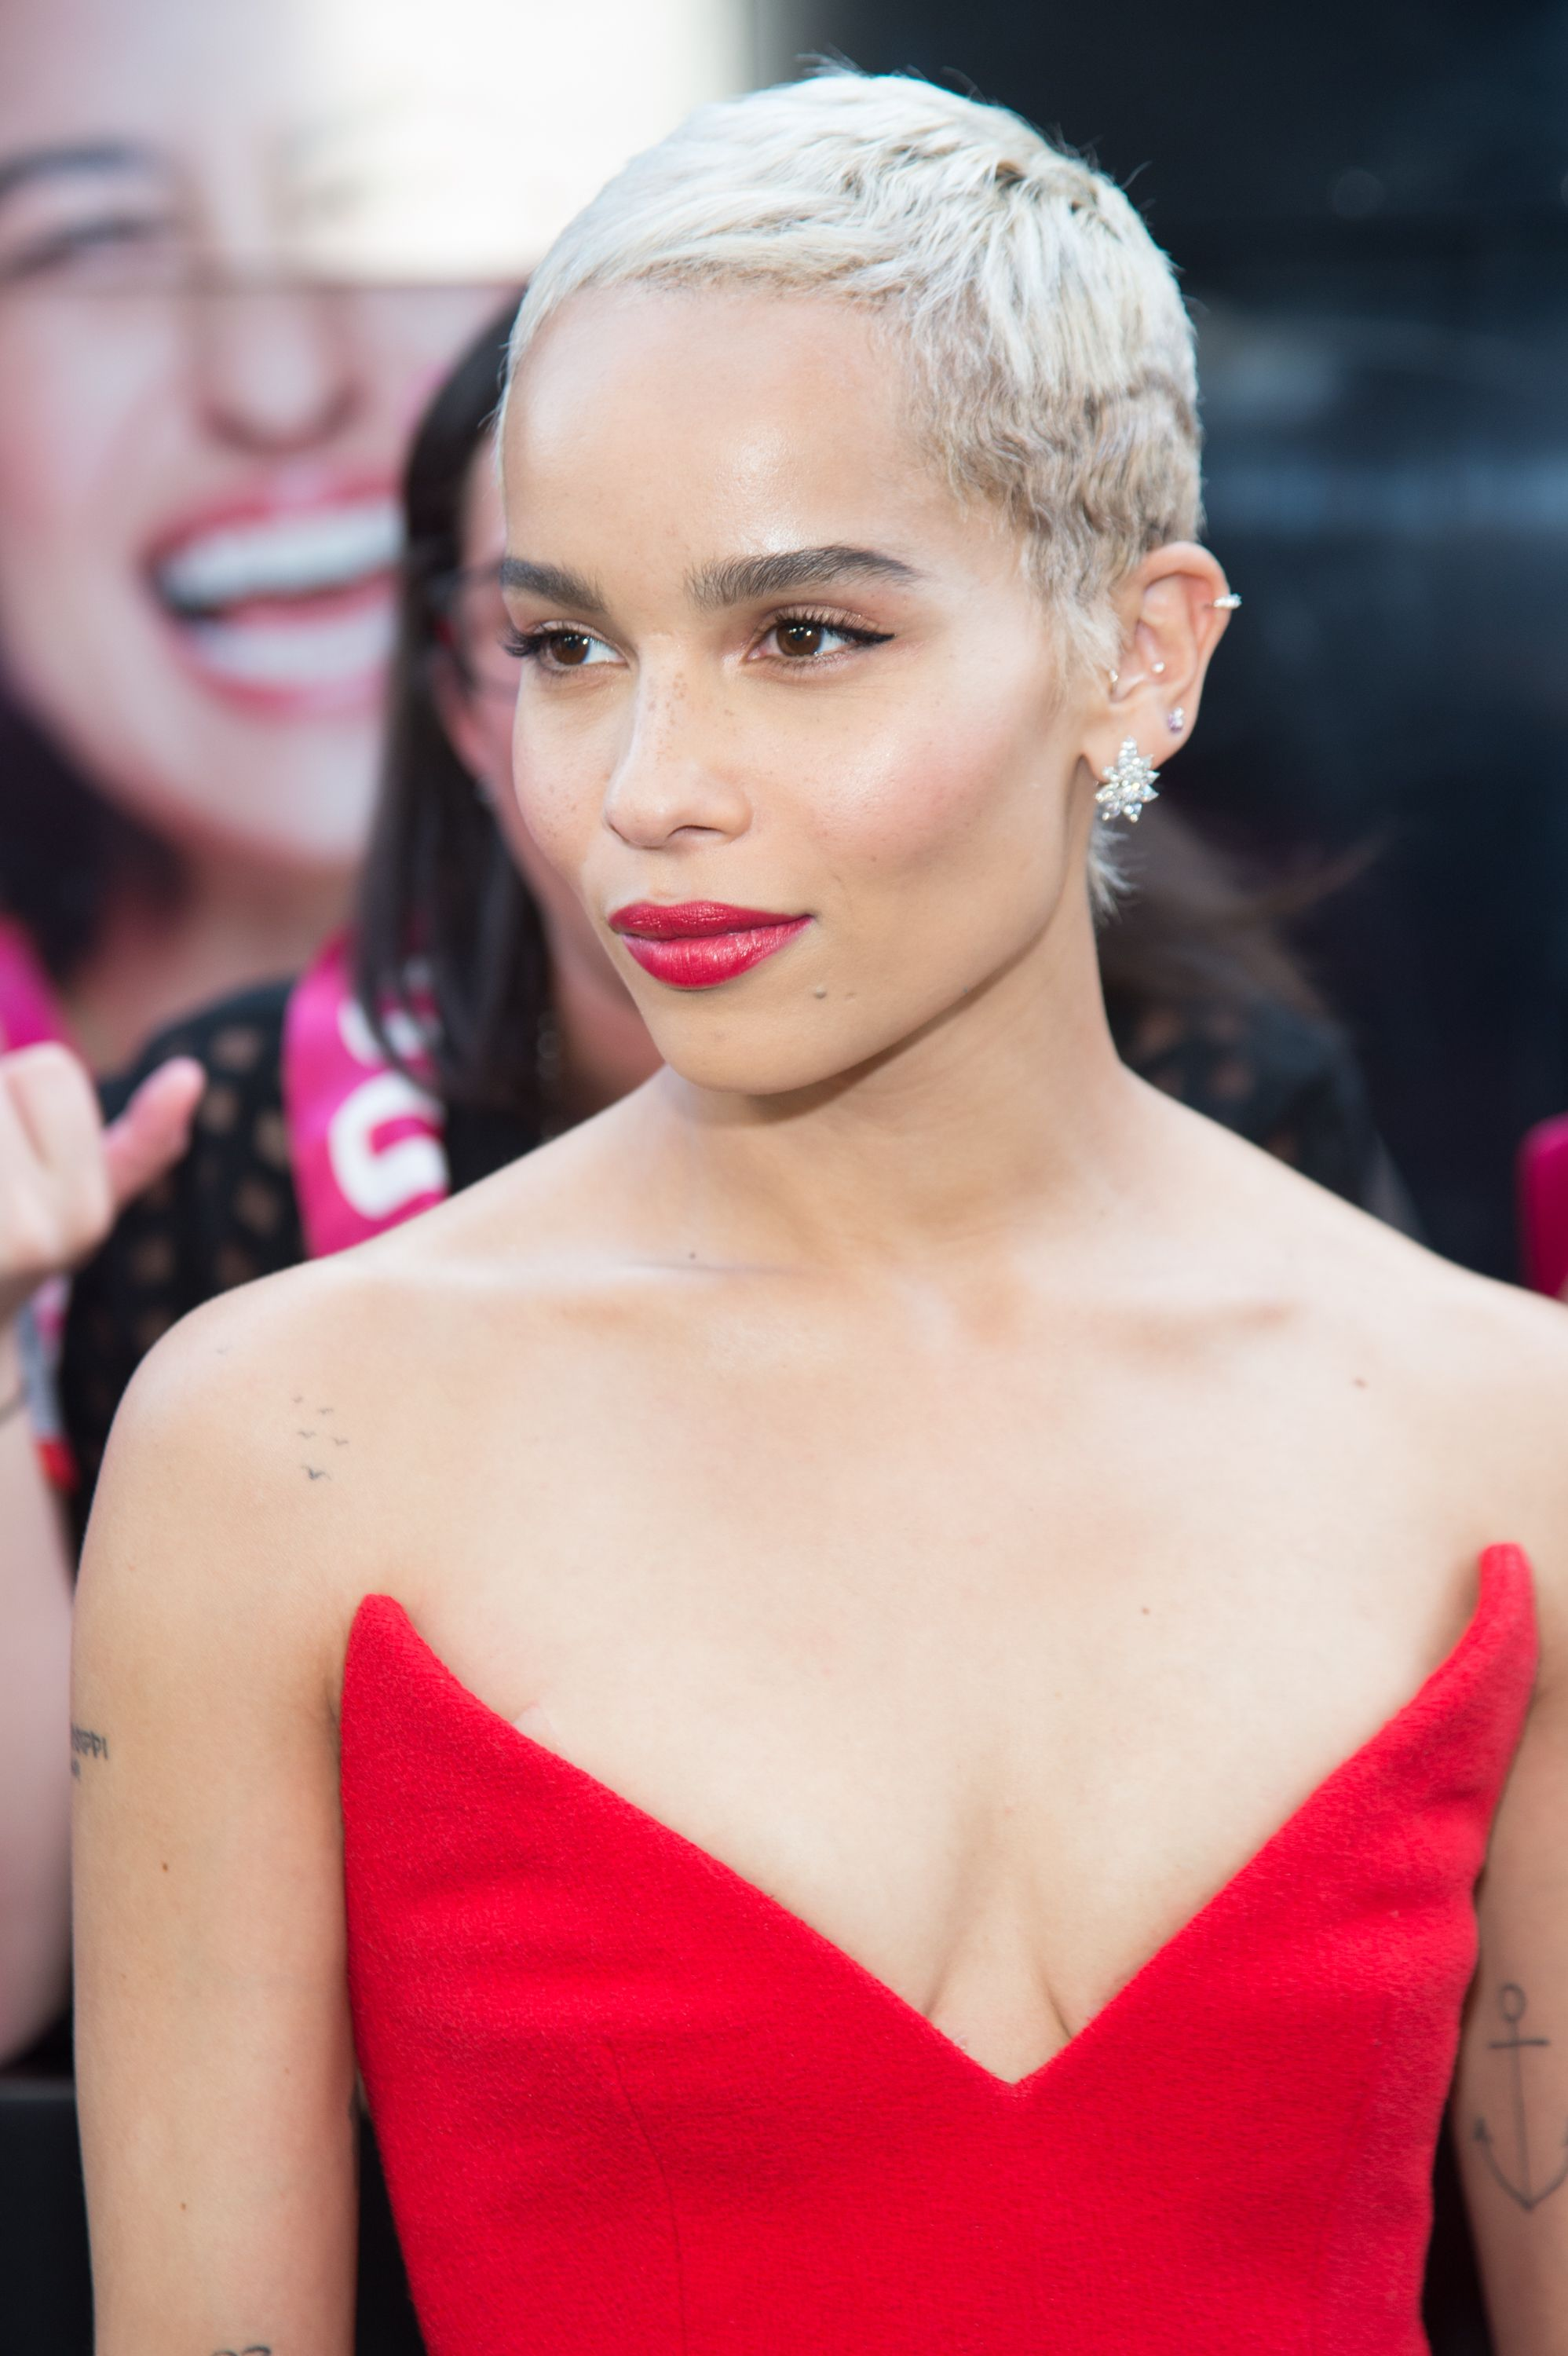 Zoe Kravitz Matches Her Makeup And Outfit At Rough Night